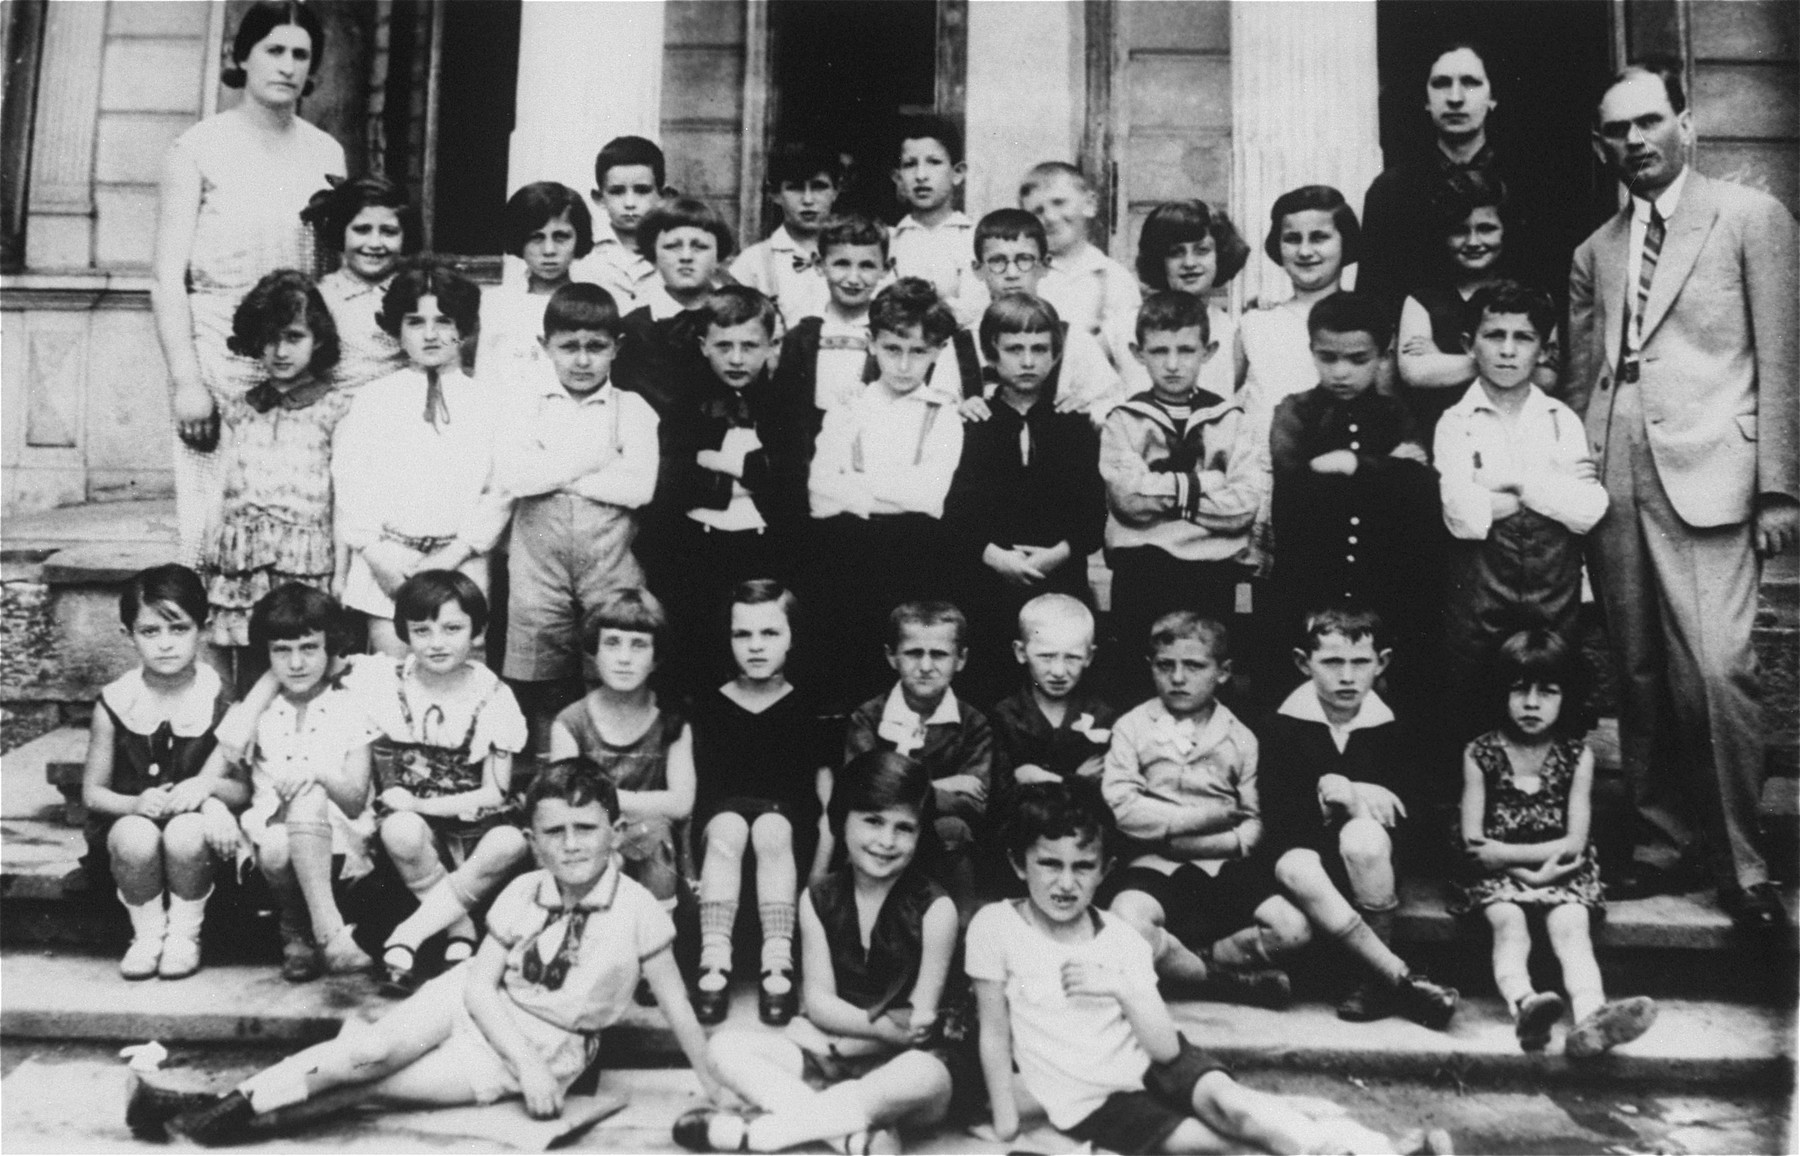 Class portrait of children at a Jewish primary school in Stanislawow.  Amalie Petranker is pictured in the third row from the front, fourth from the right.